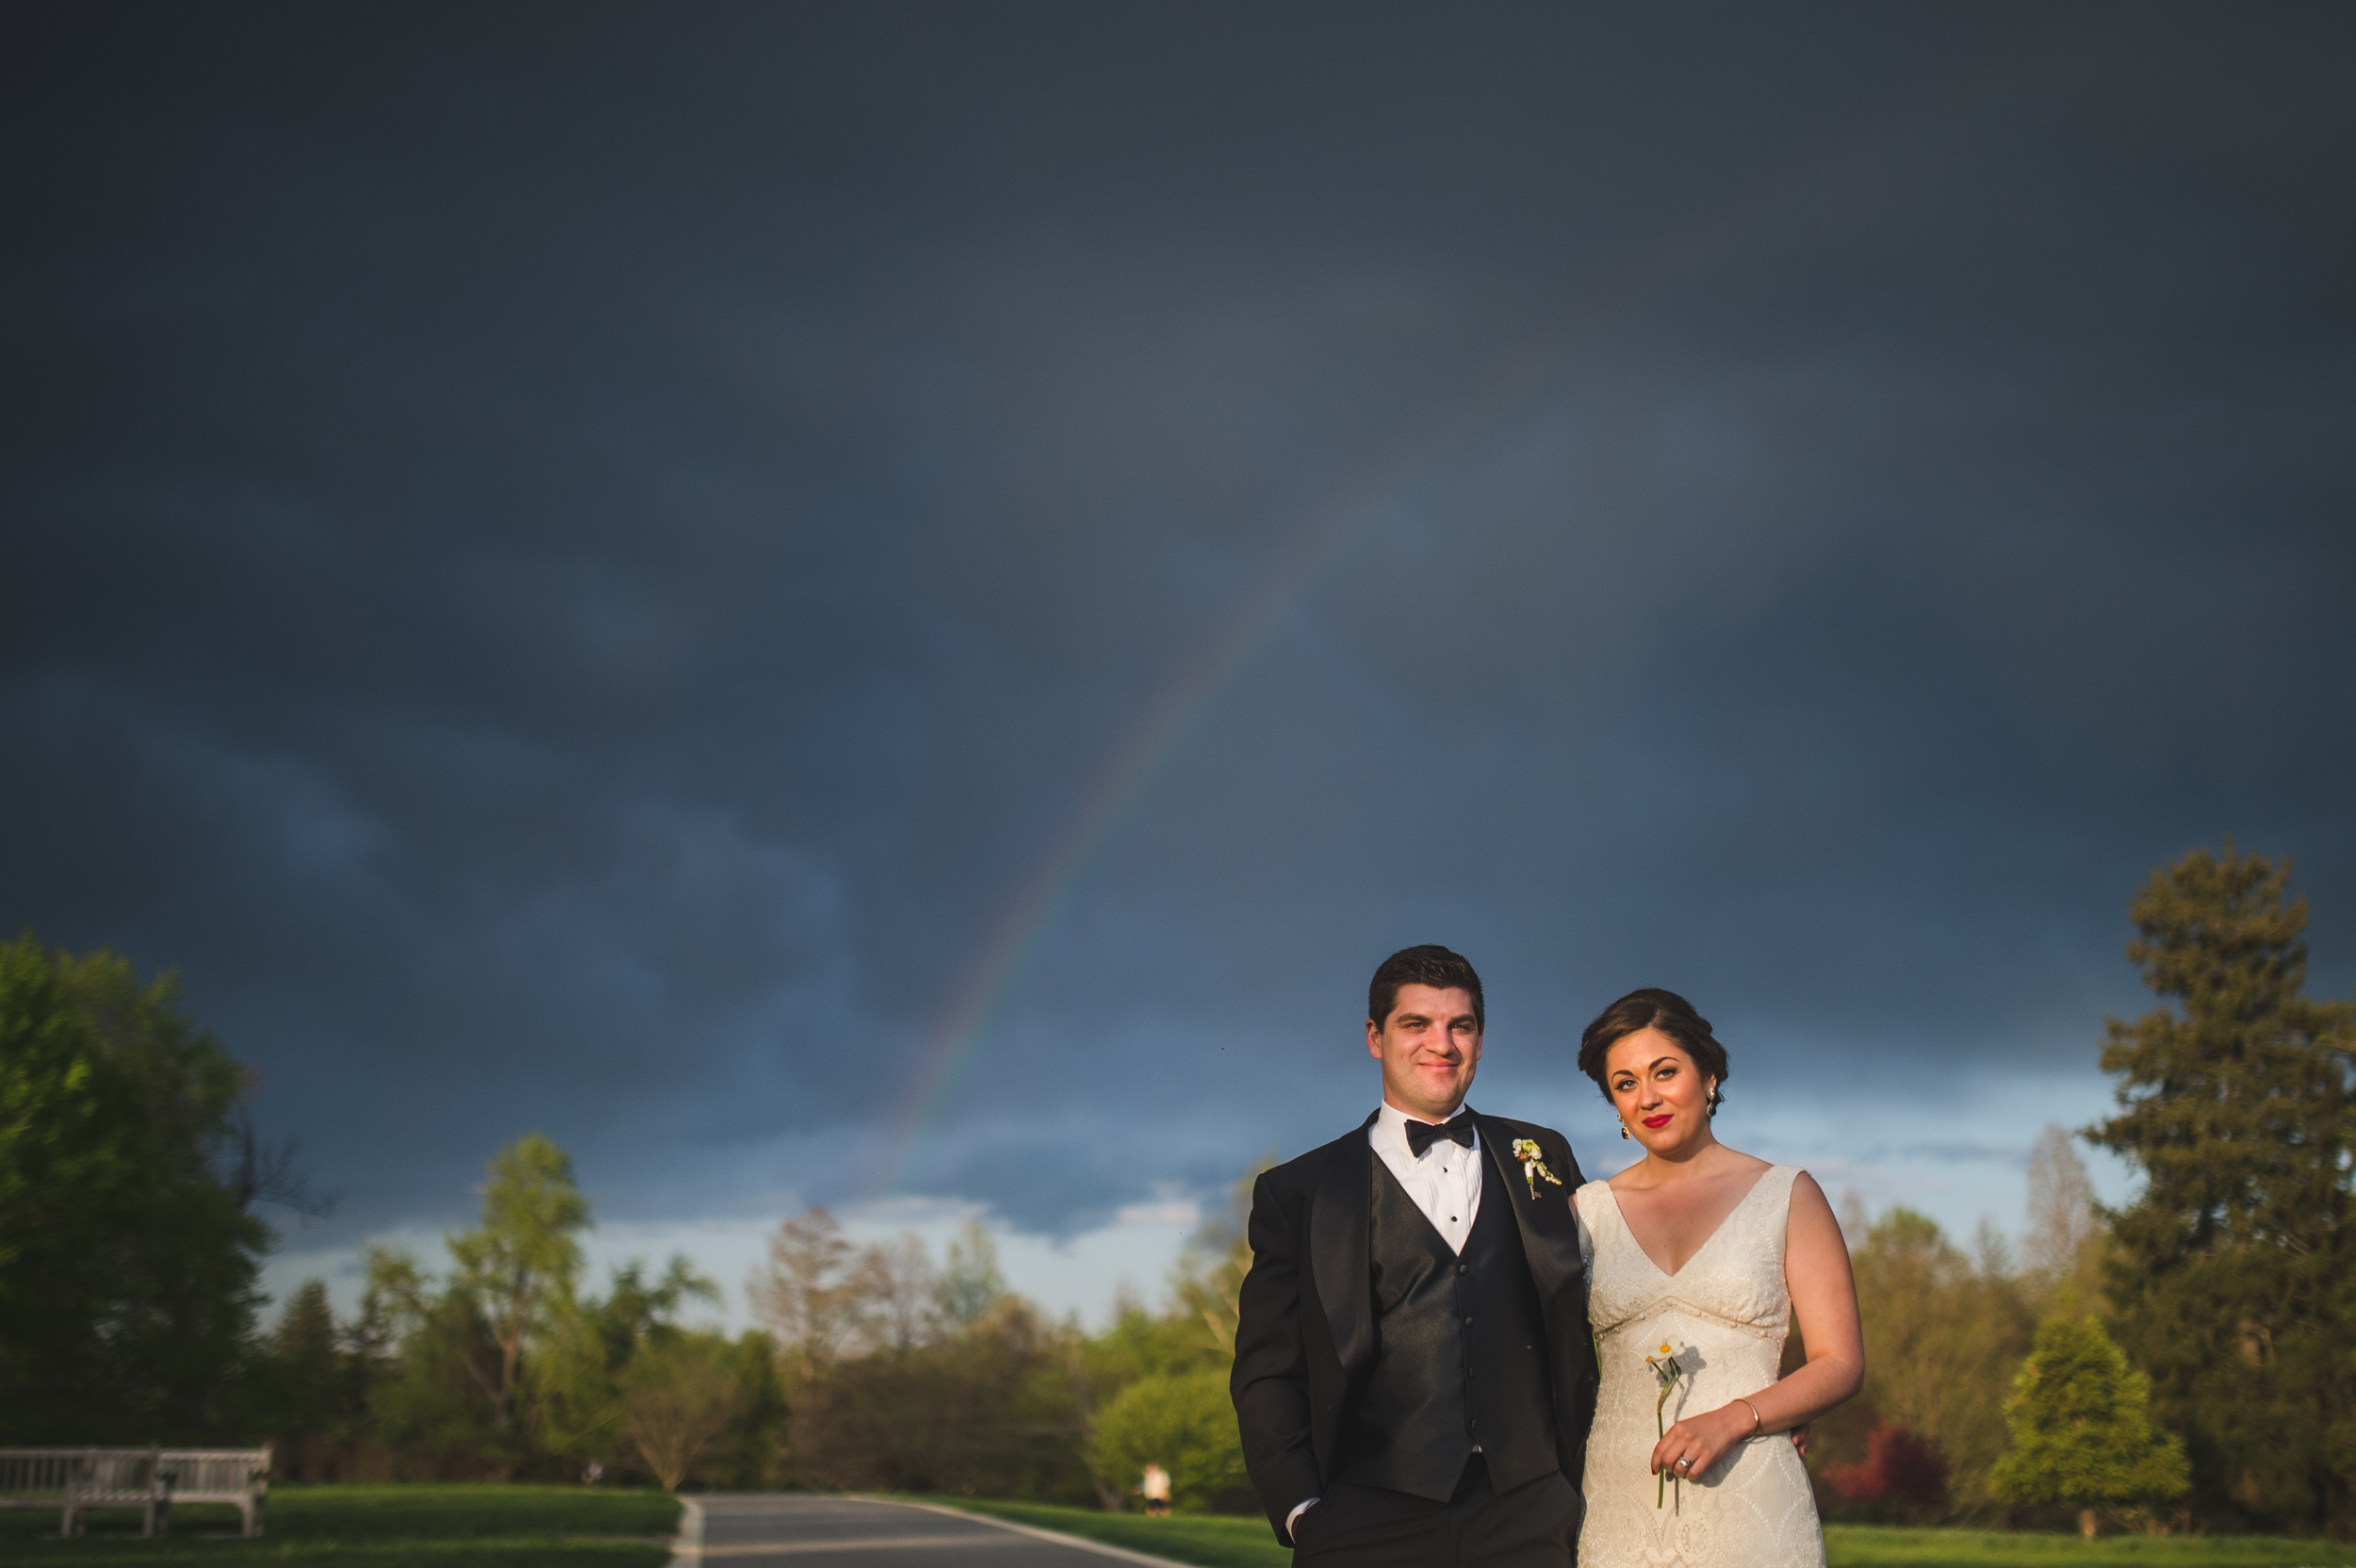 Photojournalistic wedding photography Baltimore MD By Mantas Kubilinskas-32.jpg